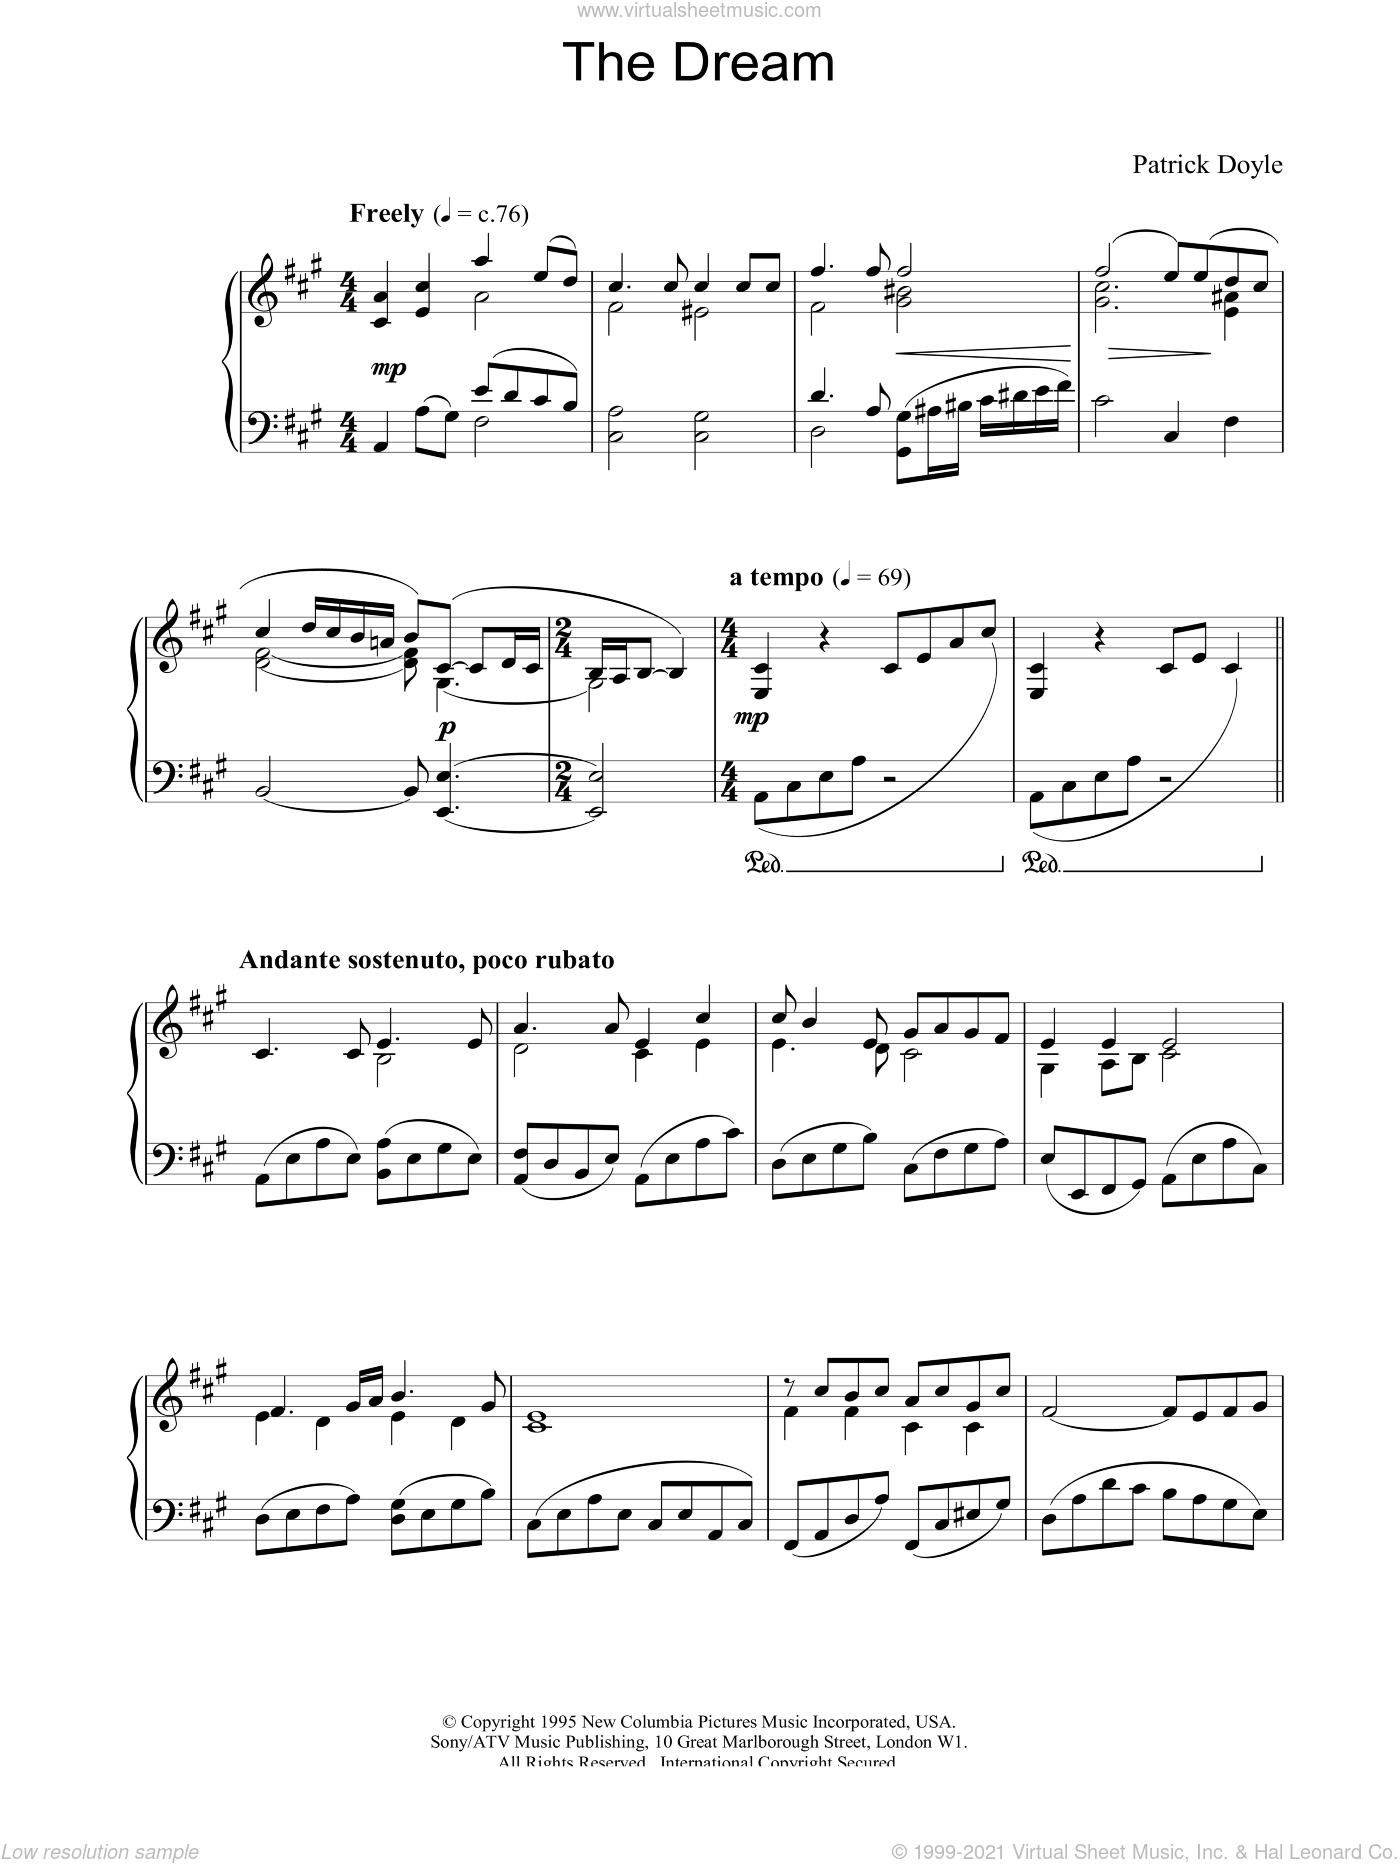 The Dream sheet music for piano solo by Patrick Doyle